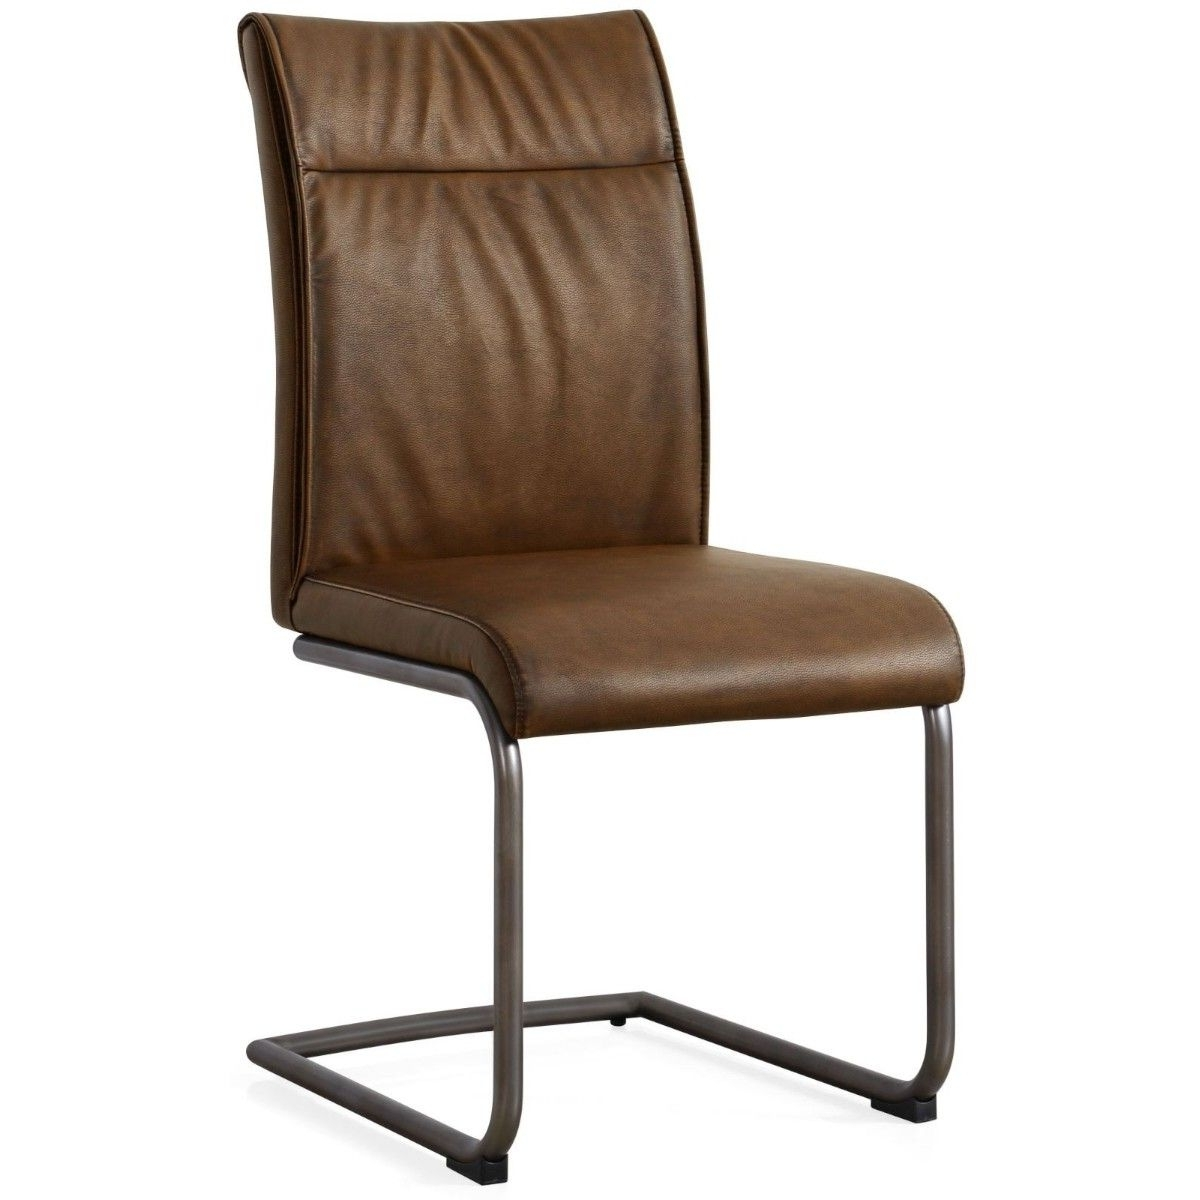 Most Up To Date High Back Leather Dining Chairs Regarding Hutch – Industrial High Back Dining Chair Brown Leather (View 9 of 25)